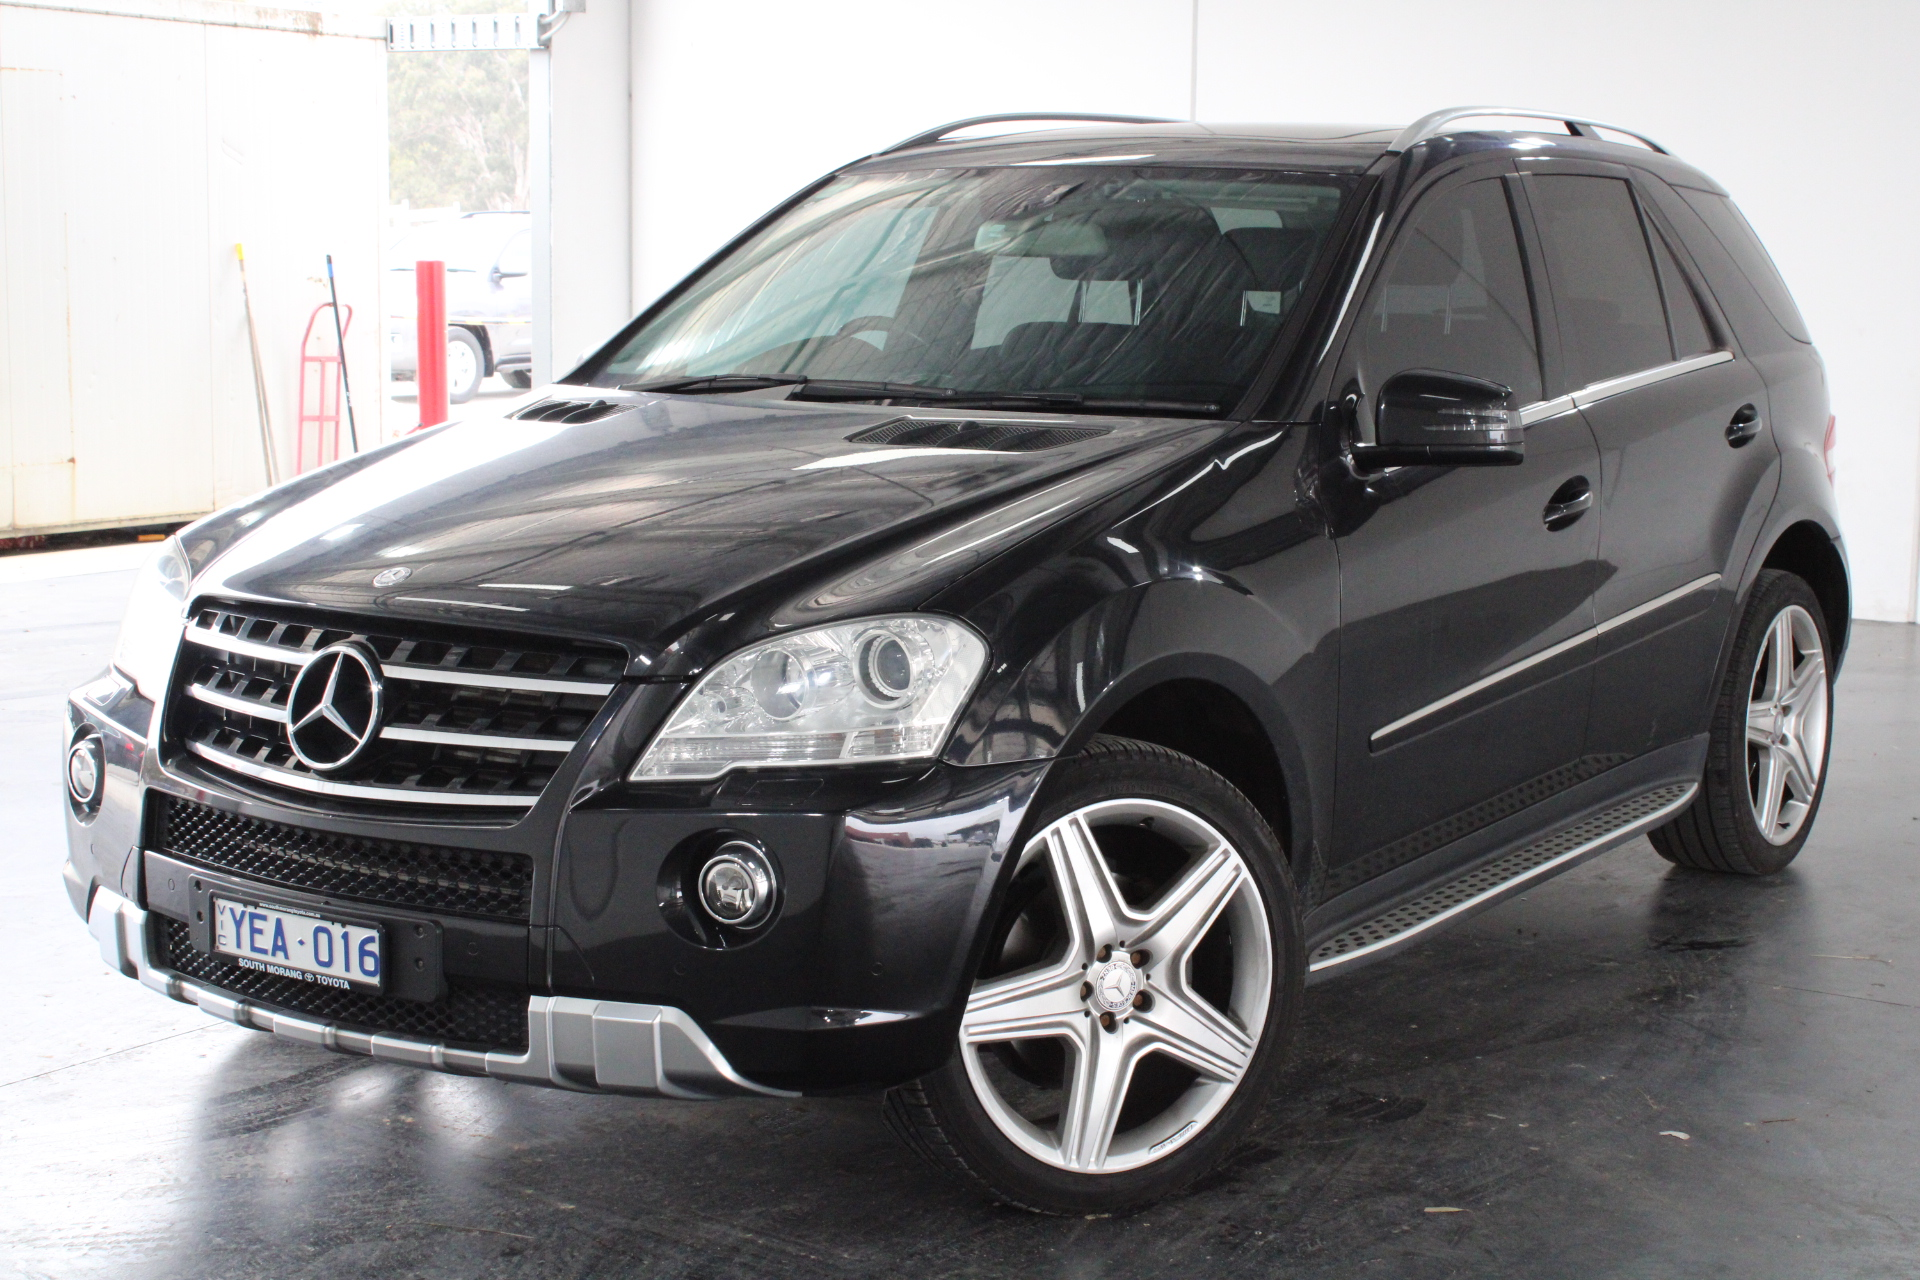 2011 Mercedes Benz ML350 CDI (4x4) AMG Package W164 Turbo Diesel Automatic